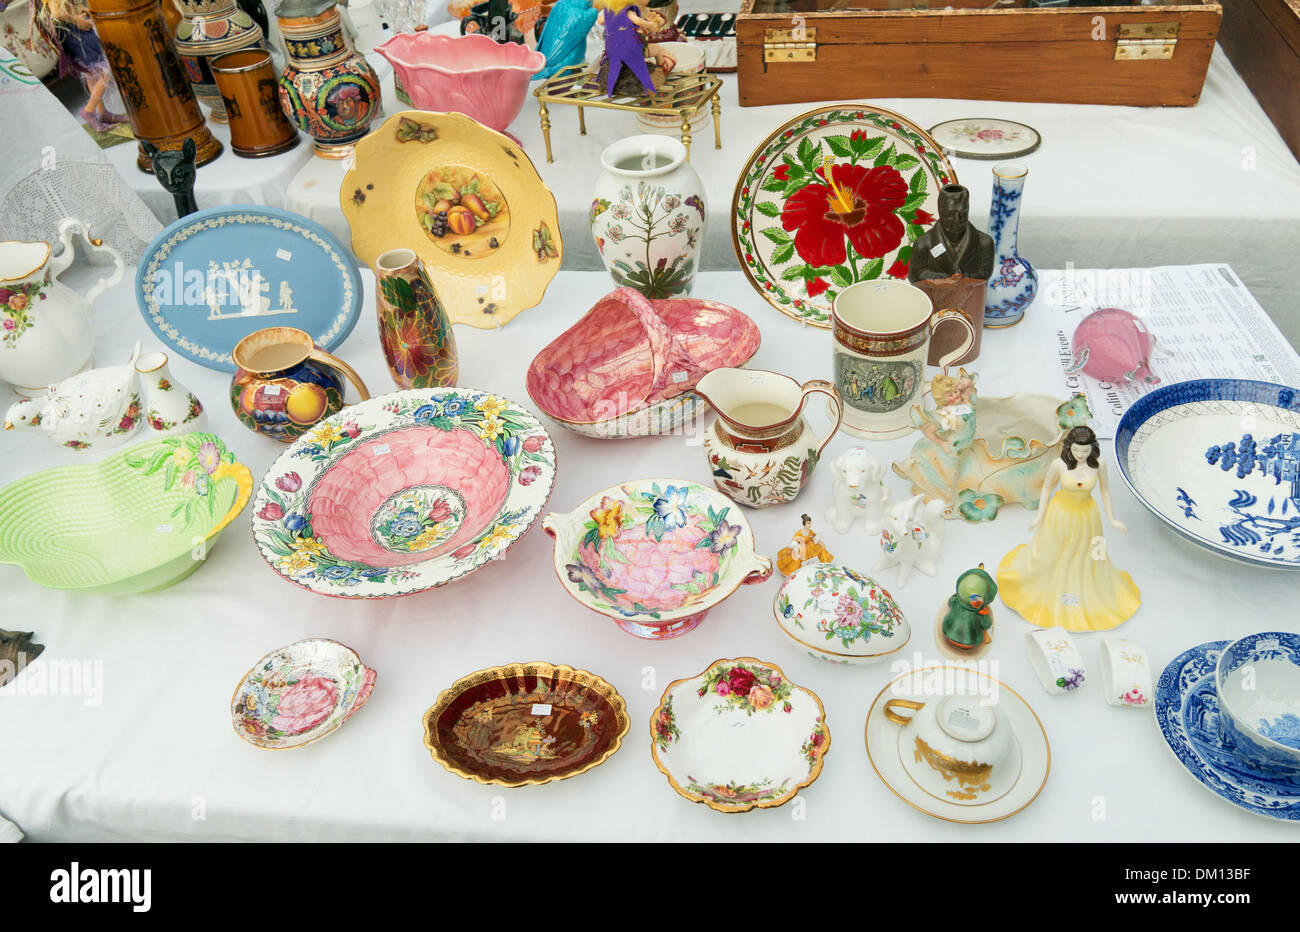 Used crockery for sale Tynemouth station covered market north east England UK - Stock Image